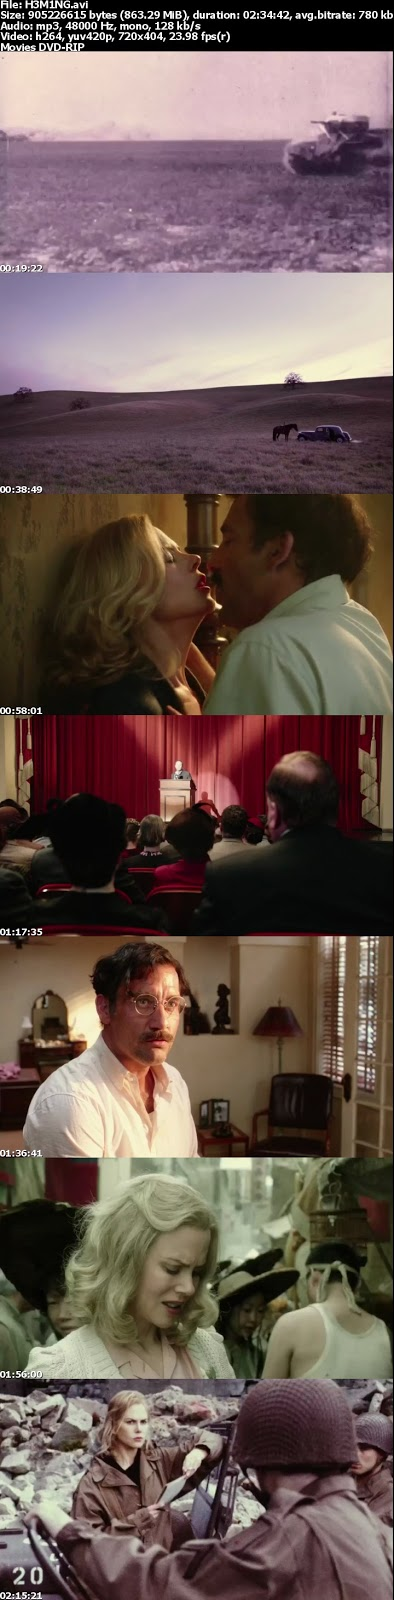 Hemingway & Gellhorn [2012] [DvdRip] [Espaol Latino] (peliculas hd )